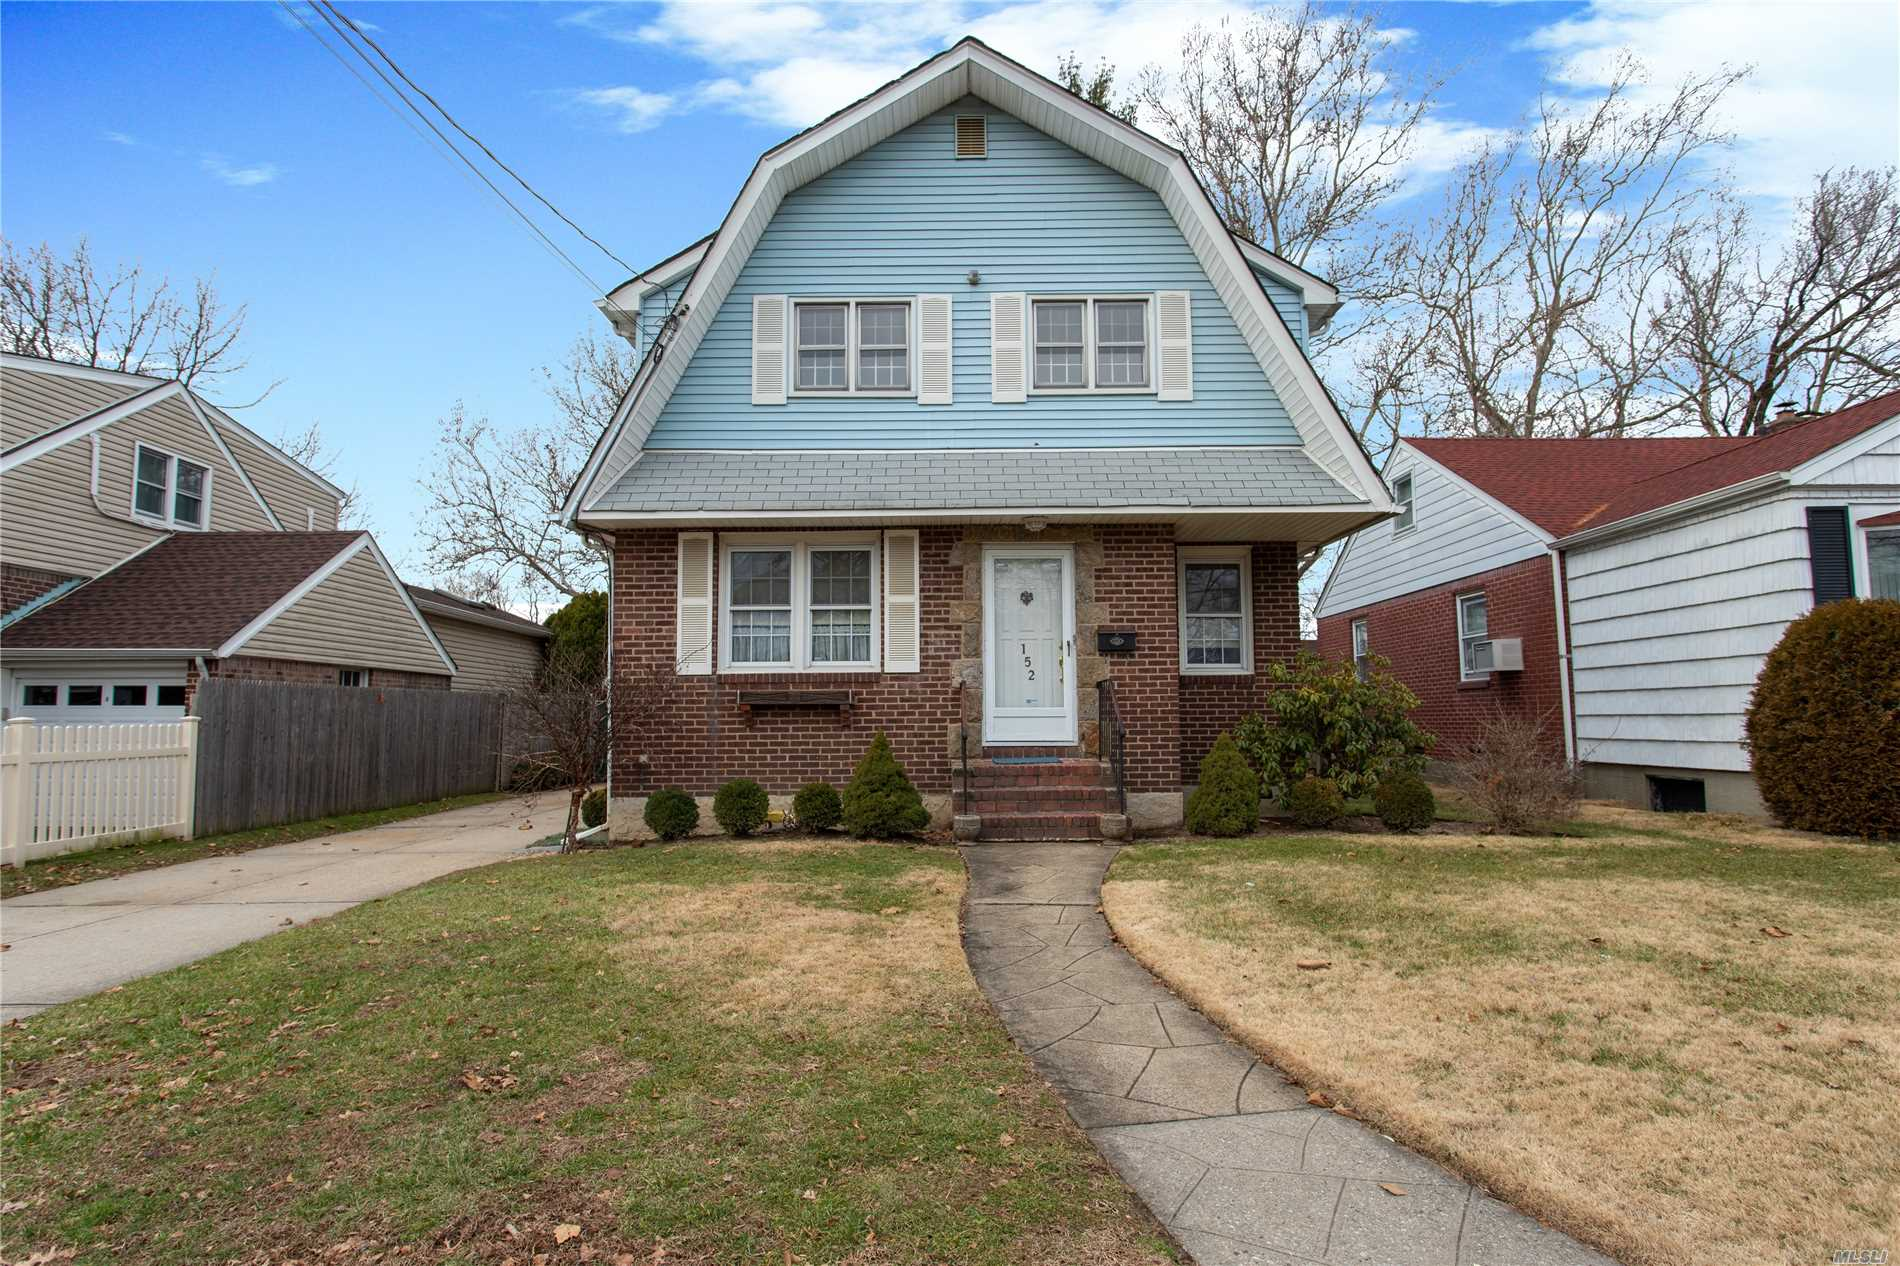 Must See This One Of A Kind Expanded Cape. Perfect For Large Family. Room For Mom. Located In The Sought After School District #17 (Franklin Square)  H. Frank Carey High School And John Street Elementary School. Convenient To Schools, Parks, Shopping And Transportation.